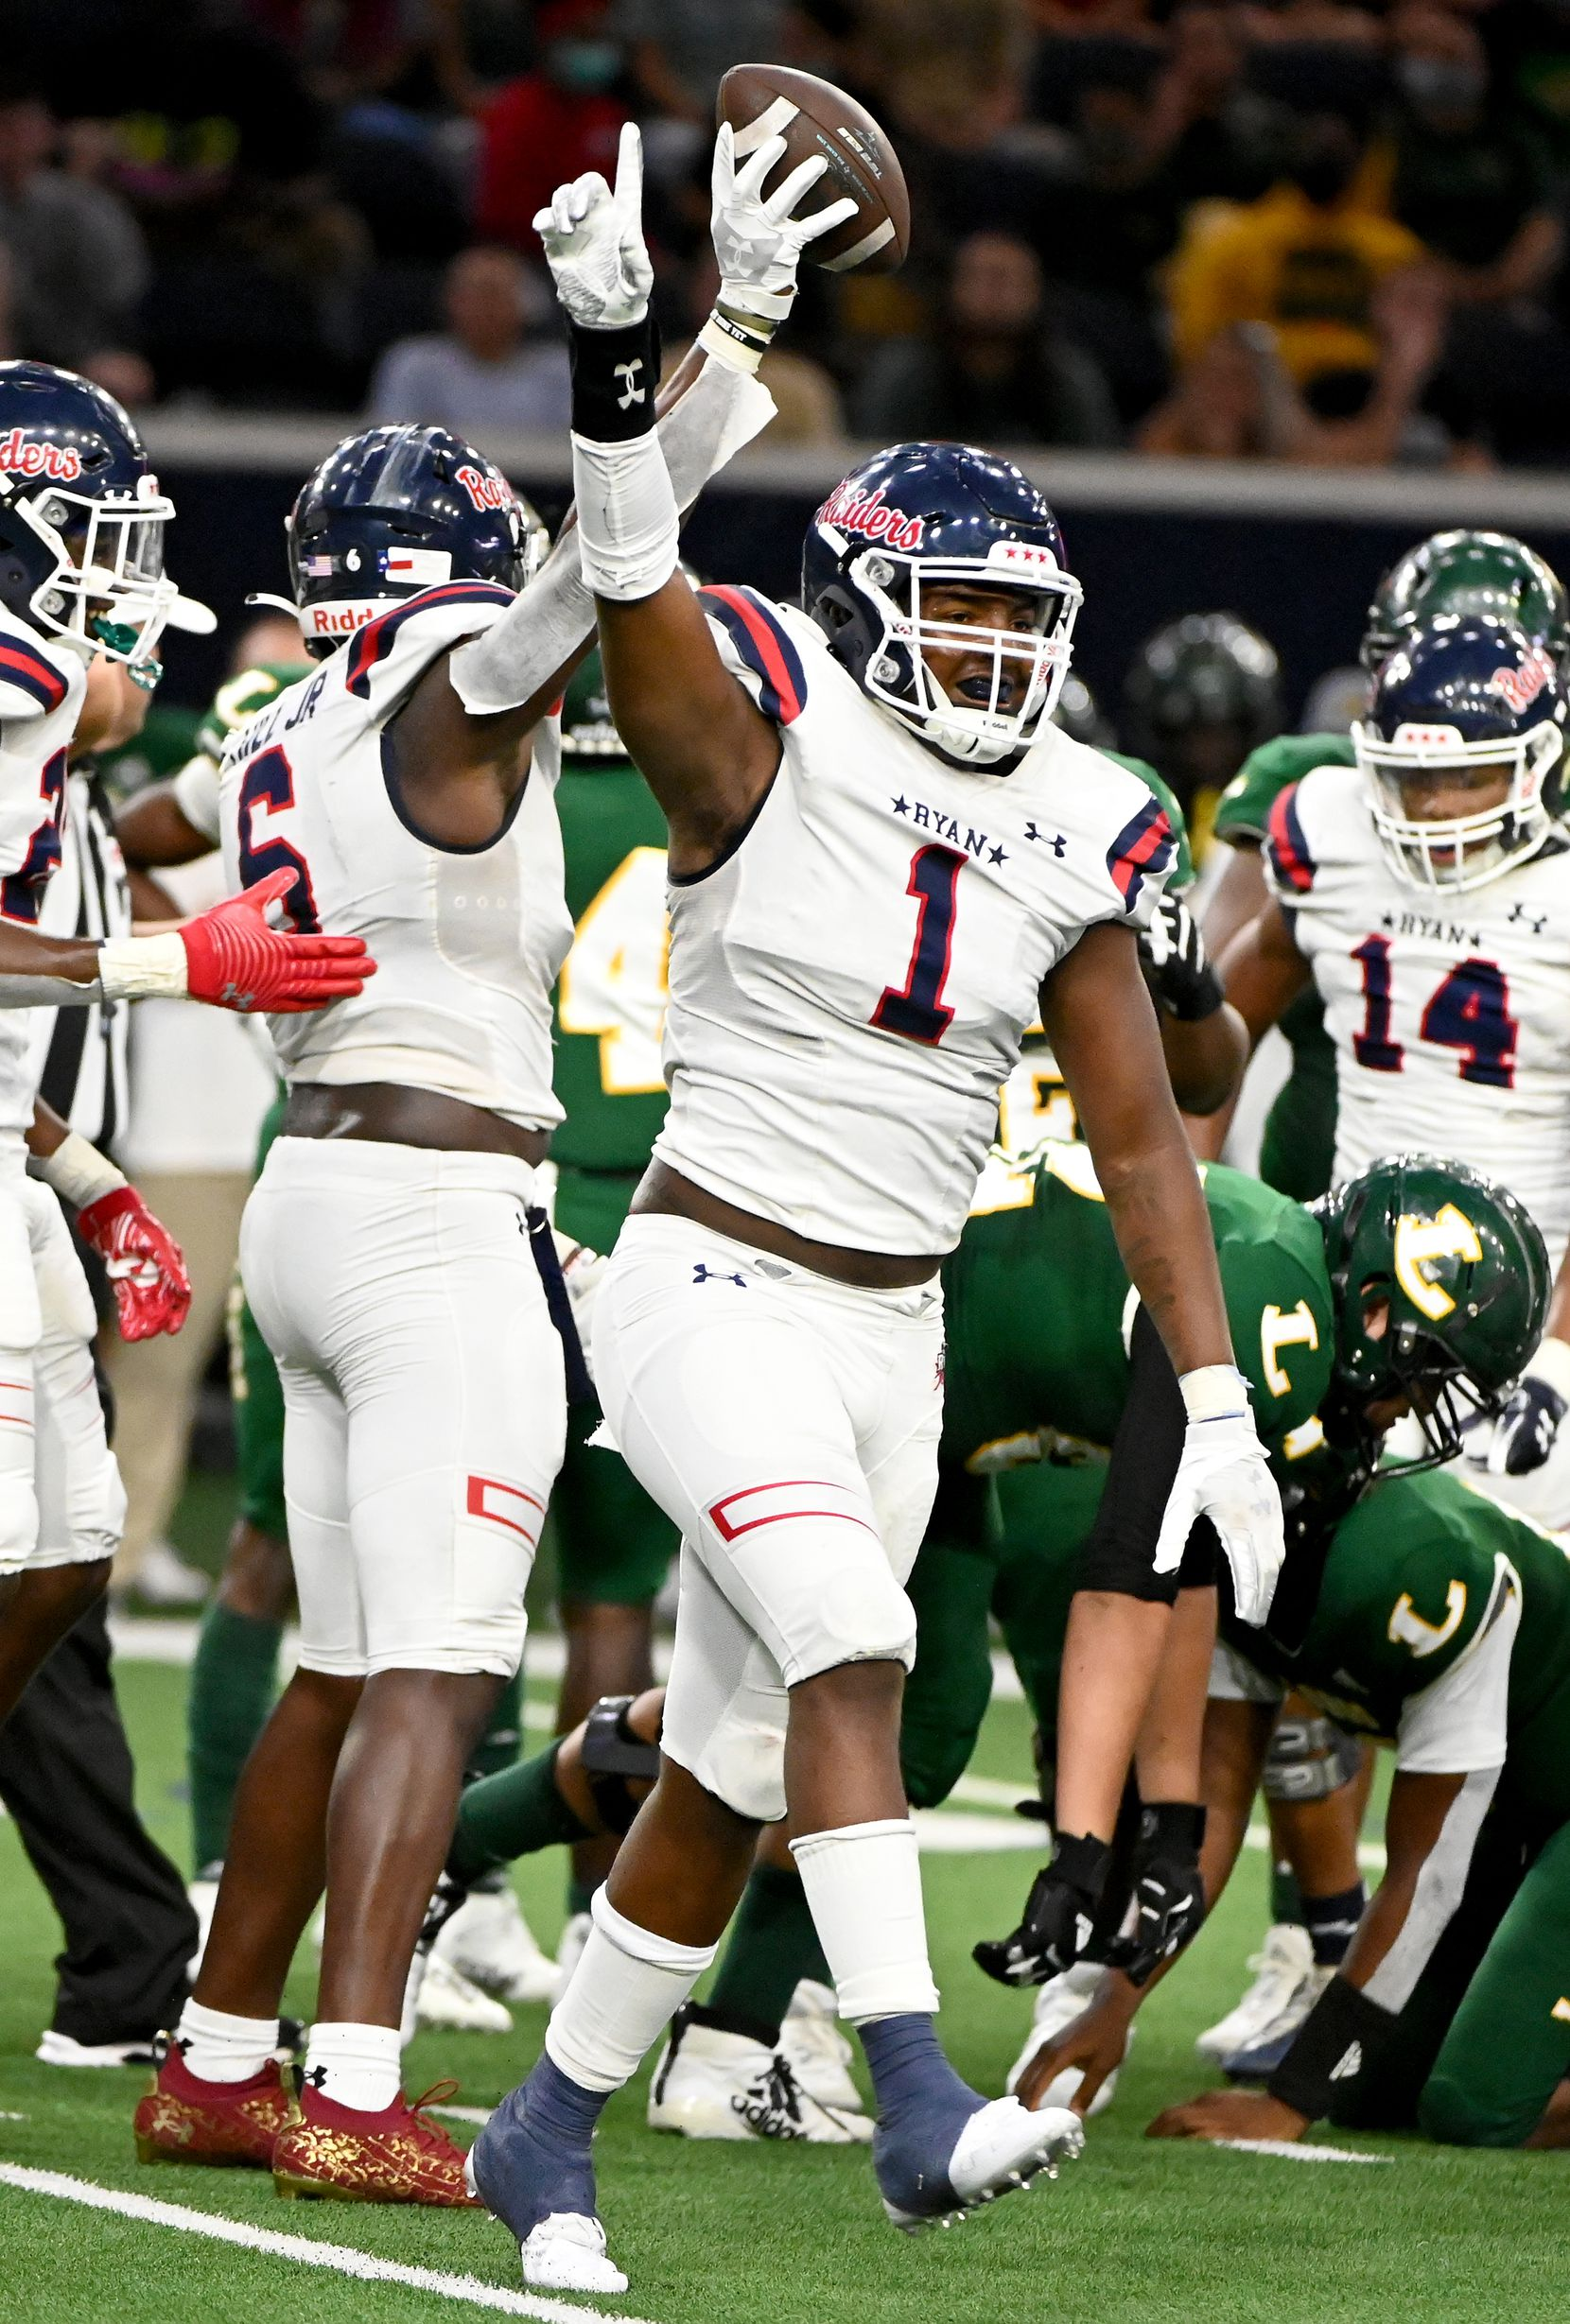 Denton Ryan's MarQuice Hill II (1) celebrate after his teams fumble recovery in the first half during a high school football game between Longview and Denton Ryan, Saturday, Aug. 28, 2021, in Frisco, Texas. (Matt Strasen/Special Contributor)